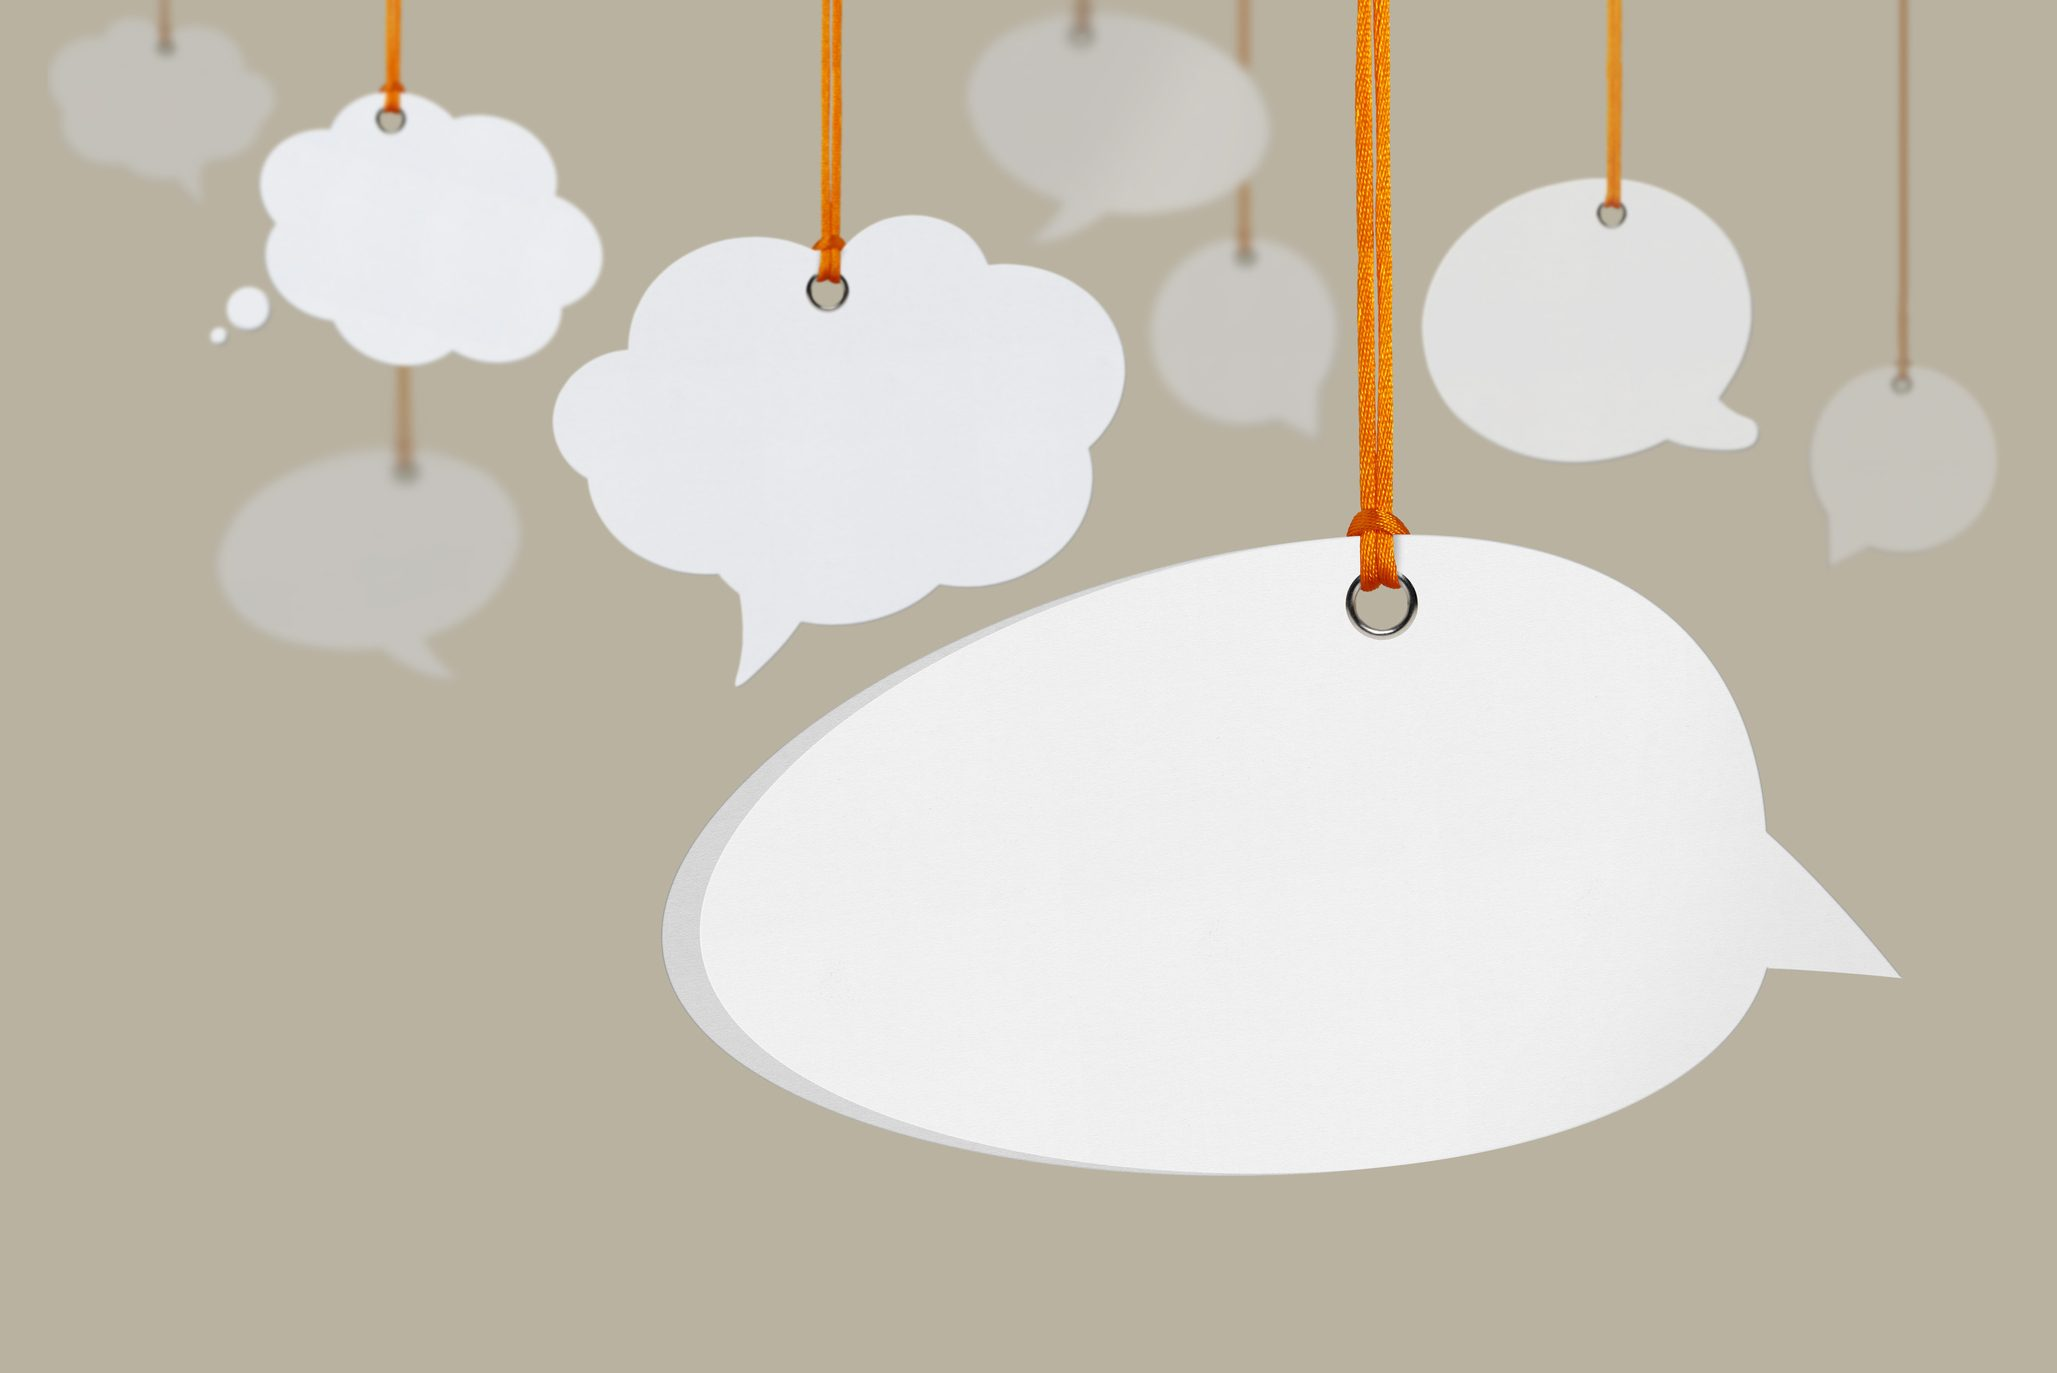 Hanging Speech Bubbles. (Getty Images)